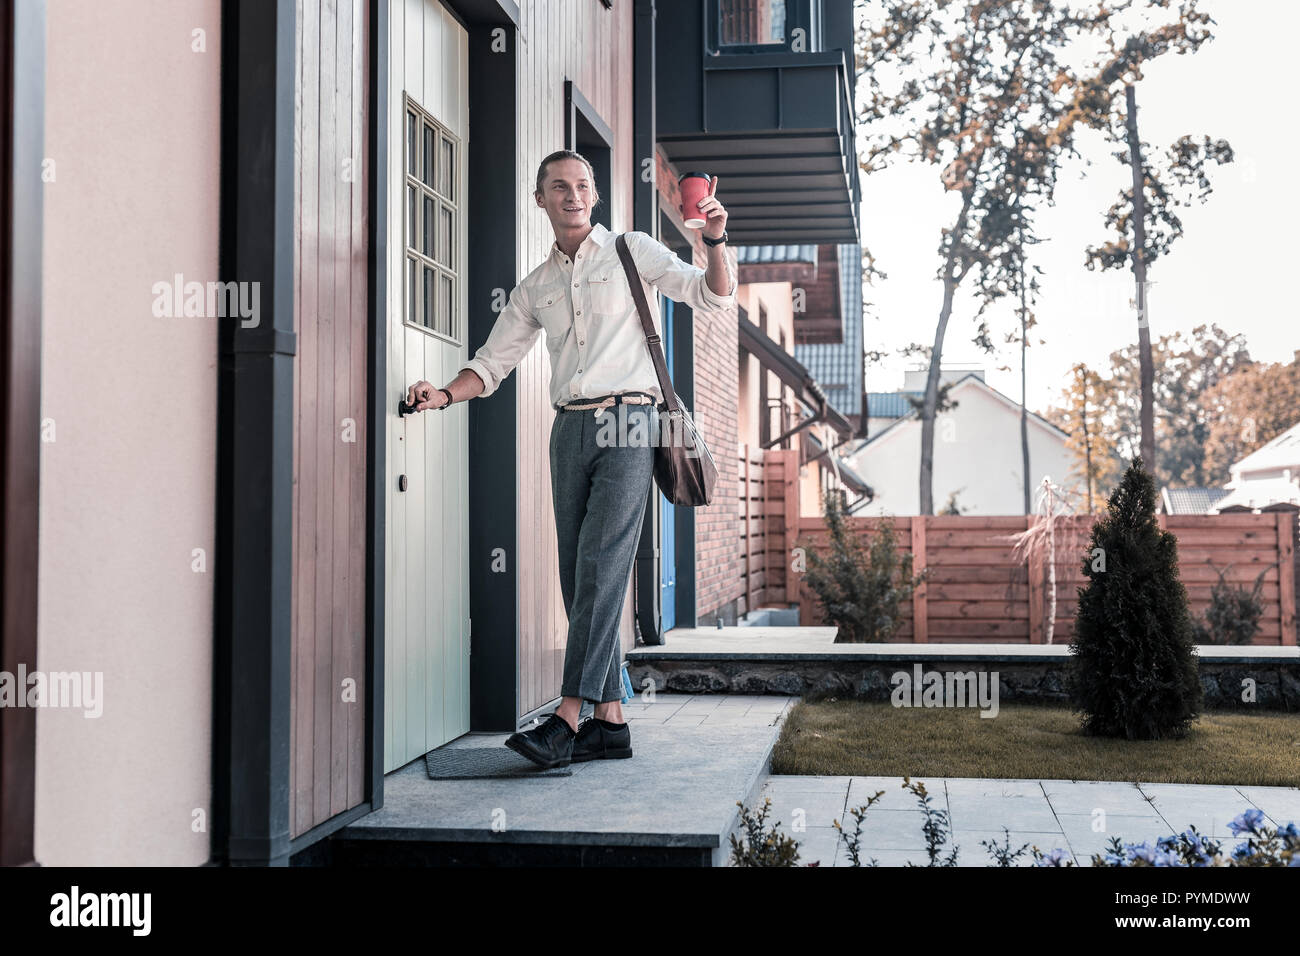 Blonde Haired Man With Takeaway Coffee Talking To His Neighbor In The Morning